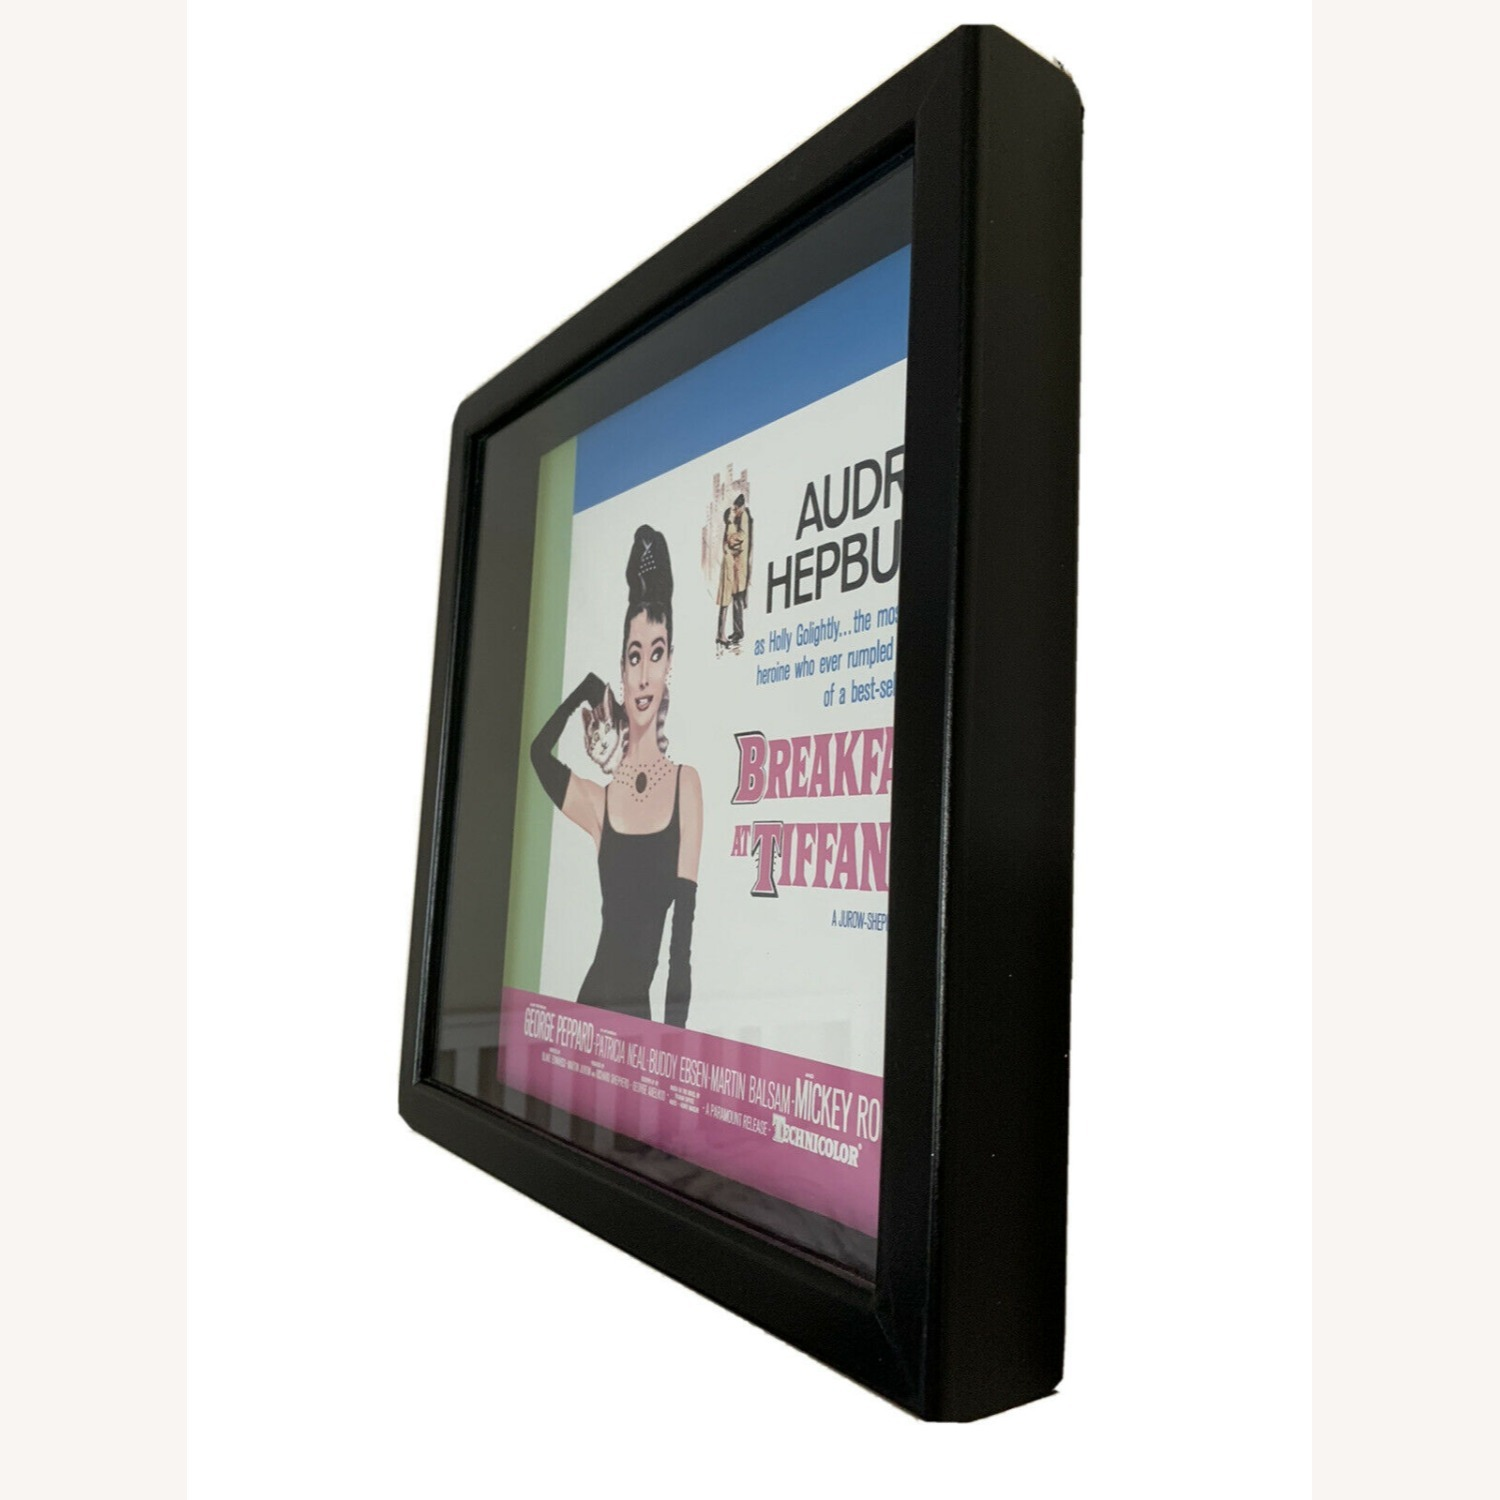 Vintage Breakfast at Tiffany's Poster Framed - image-3